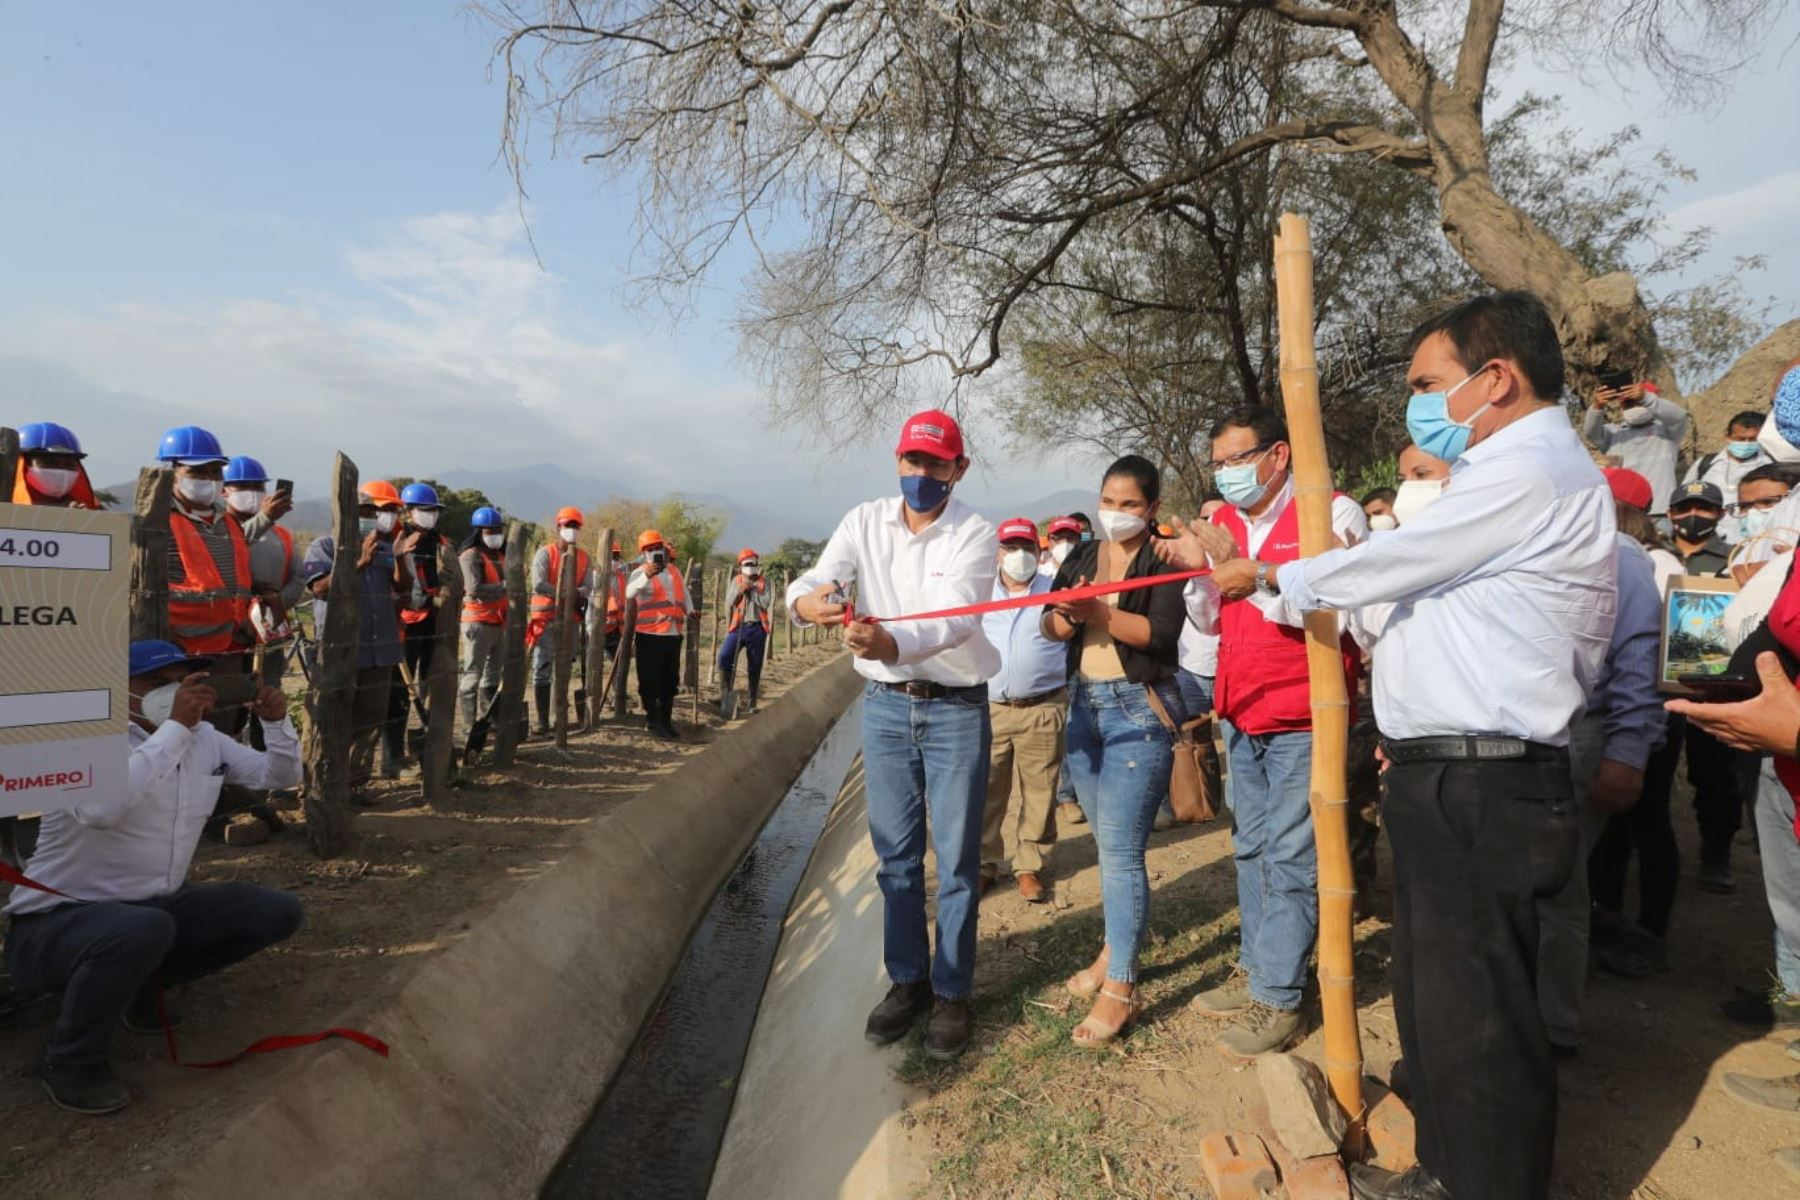 Peruvian President Martin Vizcarra visits Morropon in Piura region. Photo: ANDINA/Presidency of the Republic